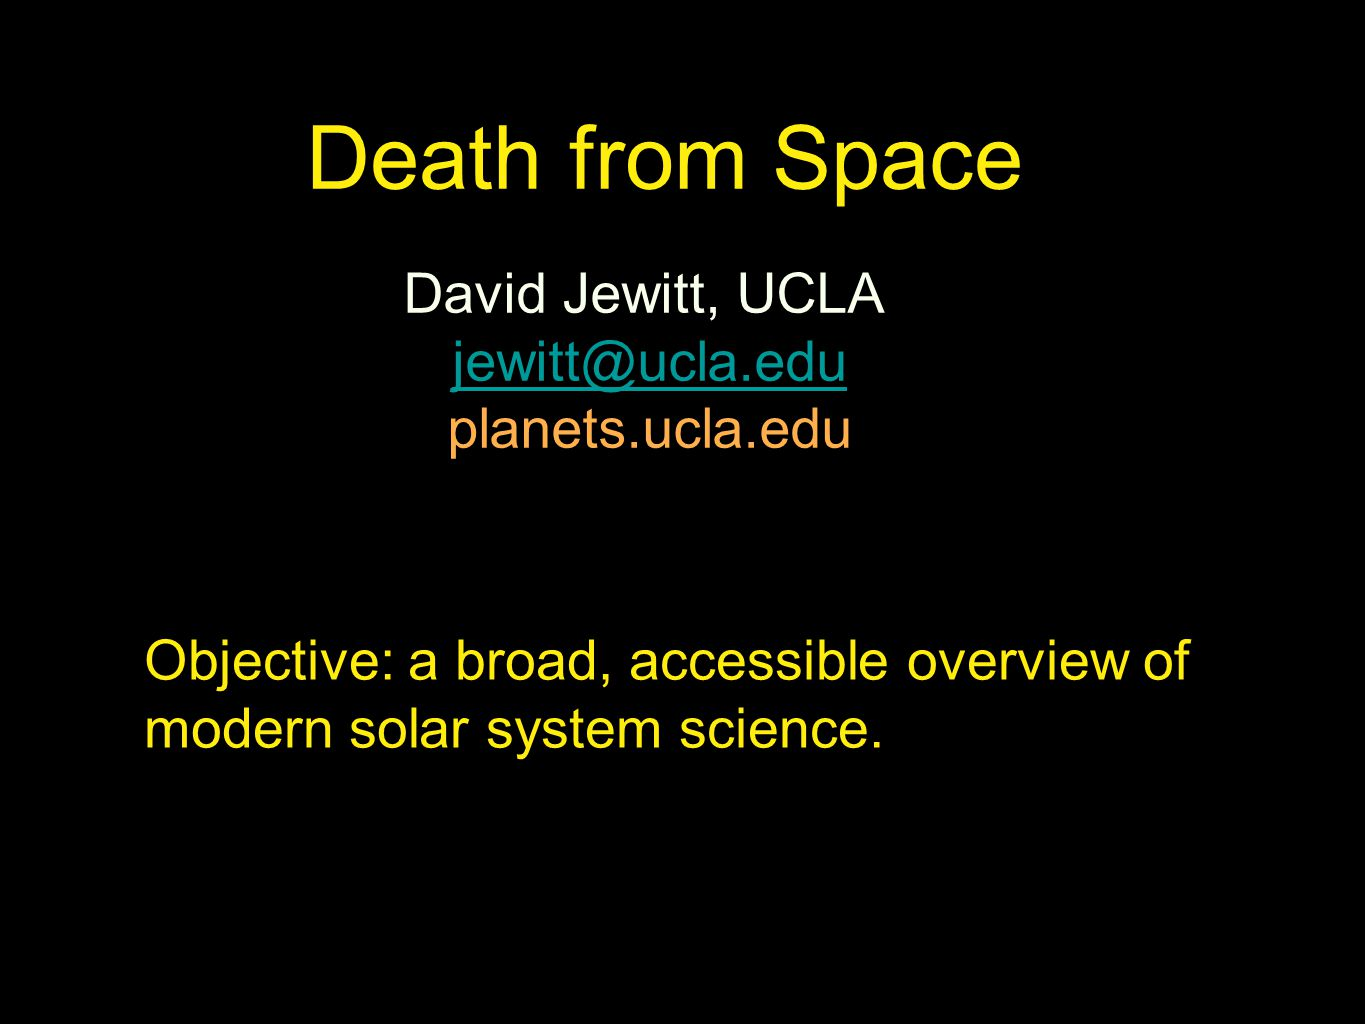 Death from Space David Jewitt, UCLA jewitt@ucla.edu planets.ucla.edu Objective: a broad, accessible overview of modern solar system science.